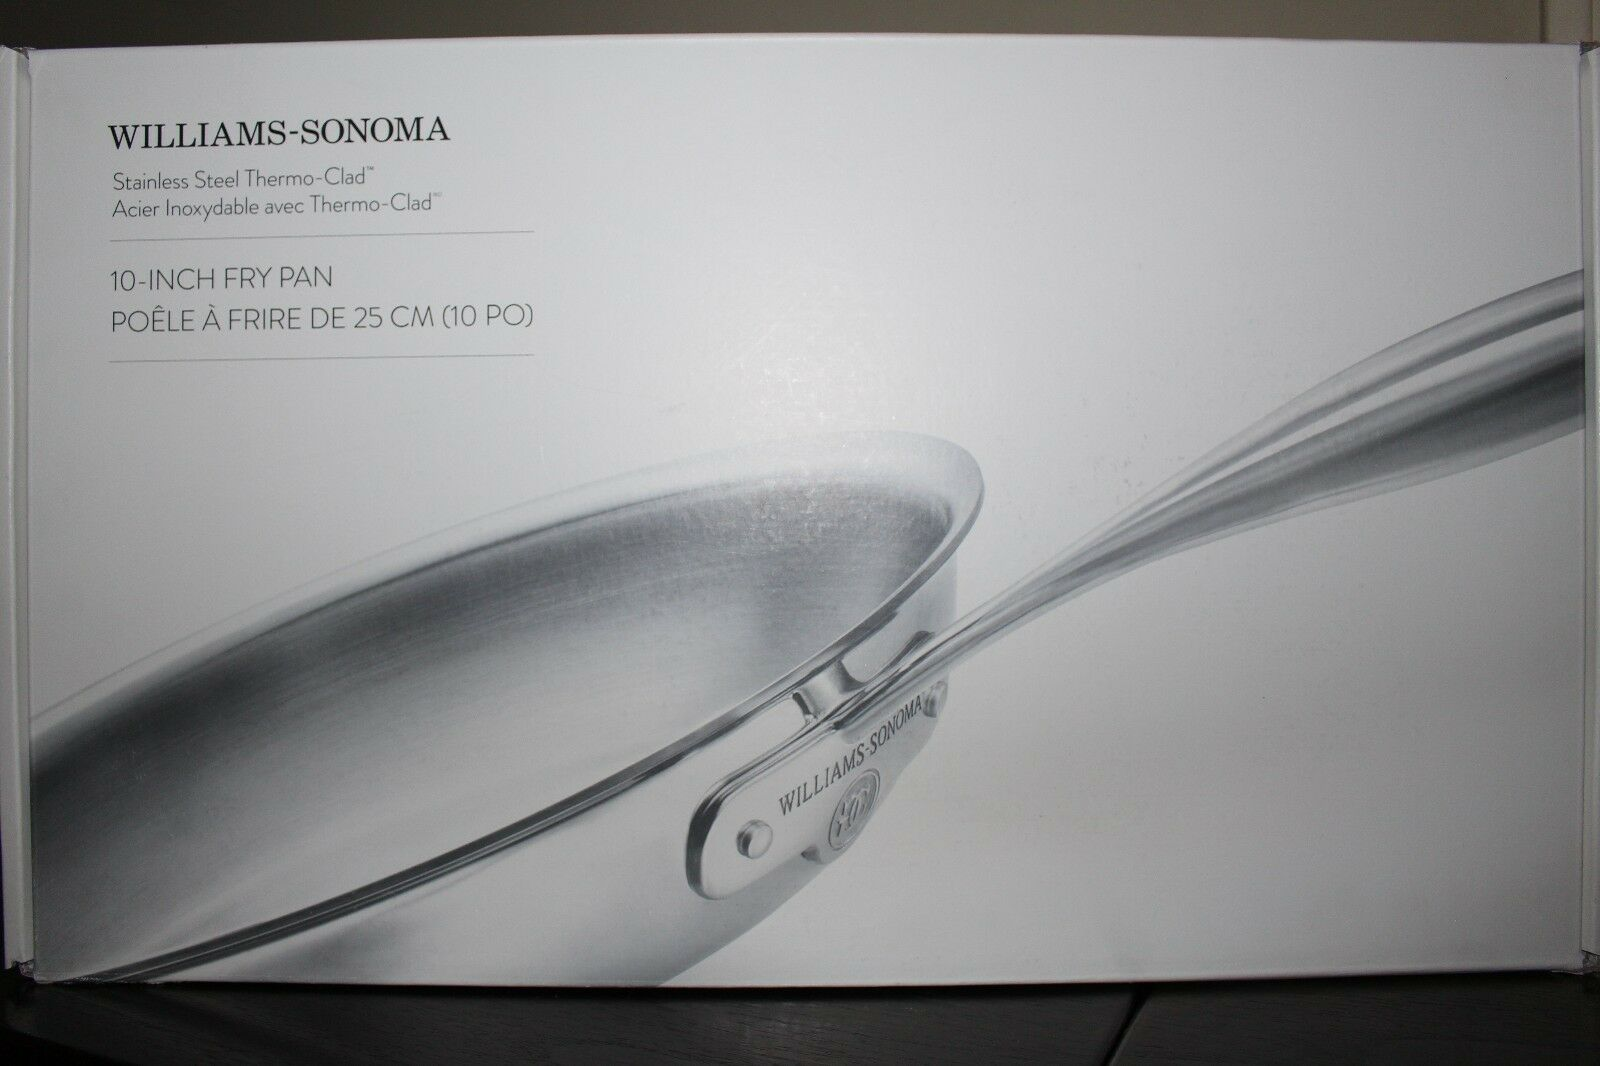 Set 2 New in Box Williams Sonoma Thermo-clad Stainless-Steel Fry Pan, 10  & 12  Poêle